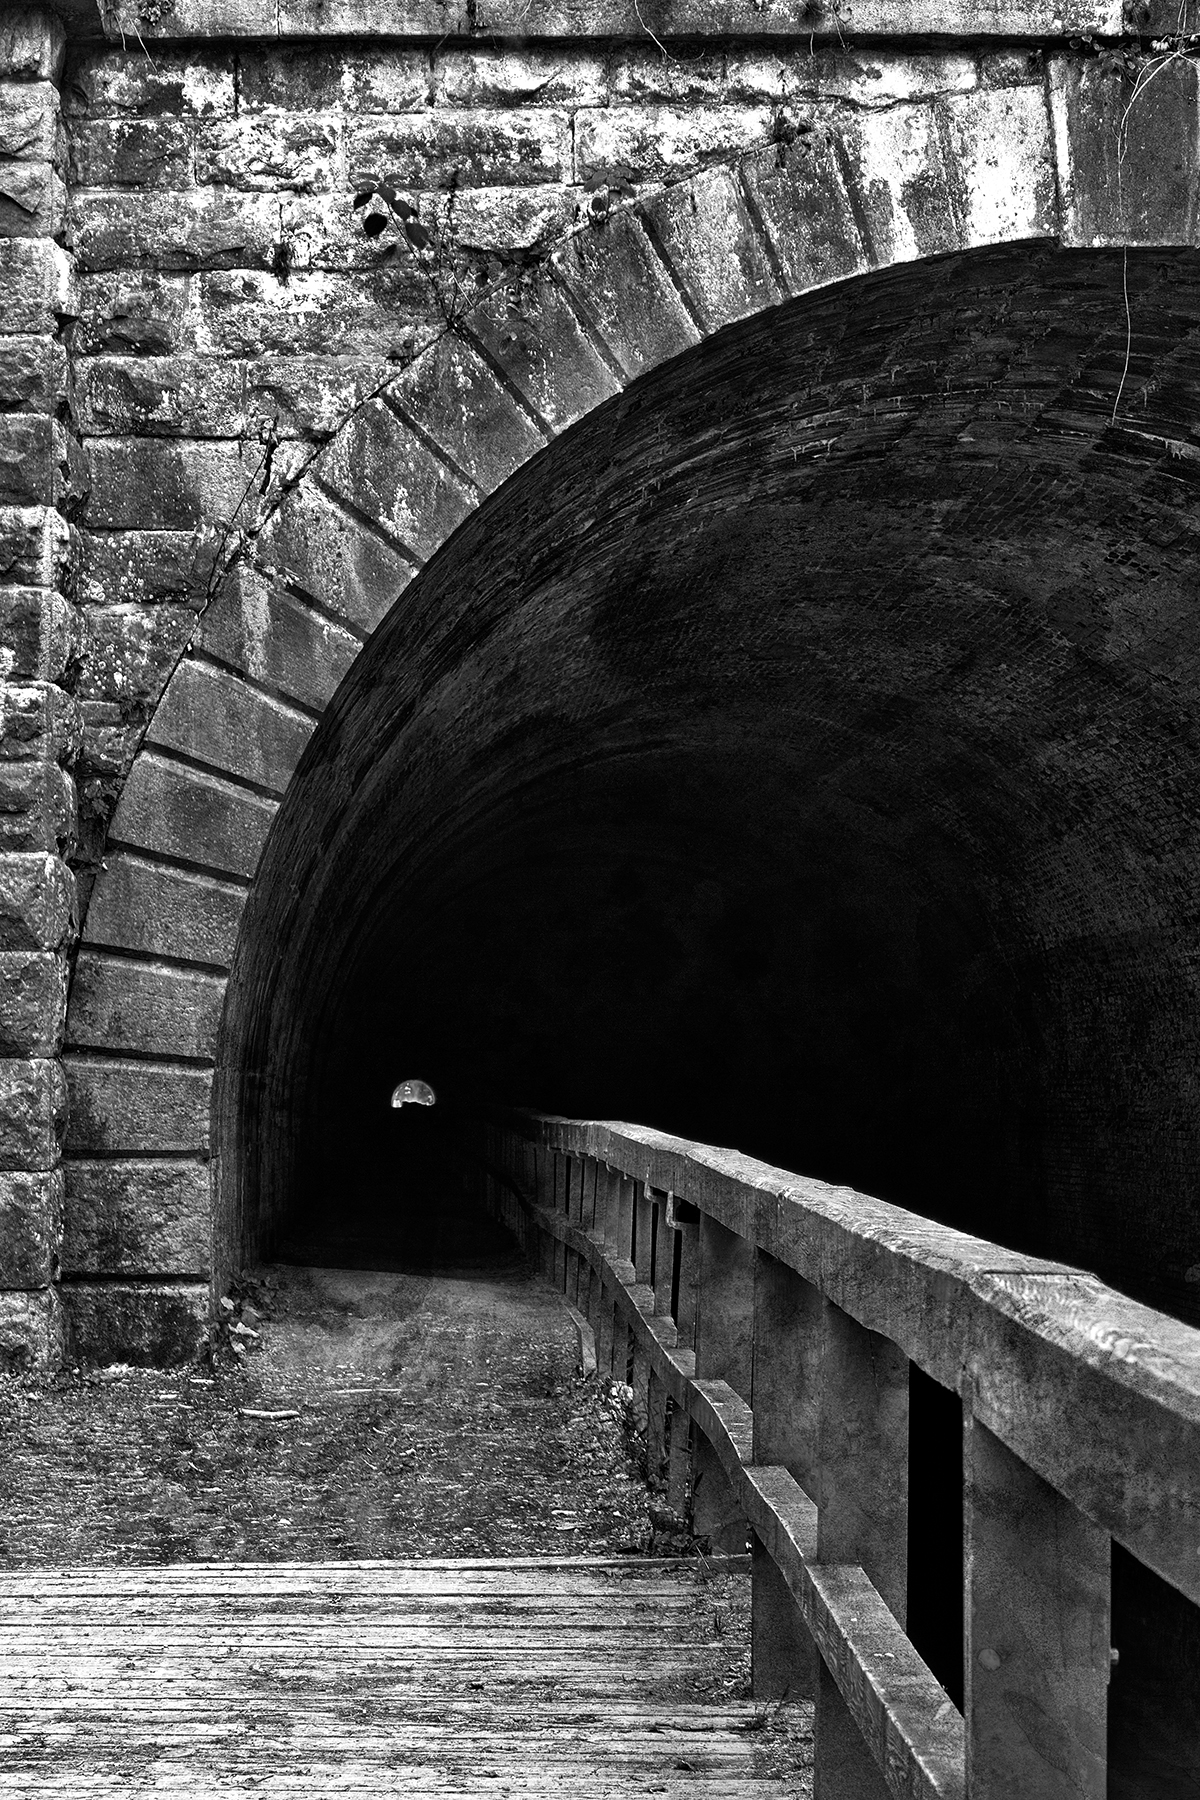 Paw paw tunnel - black & white hdr photo